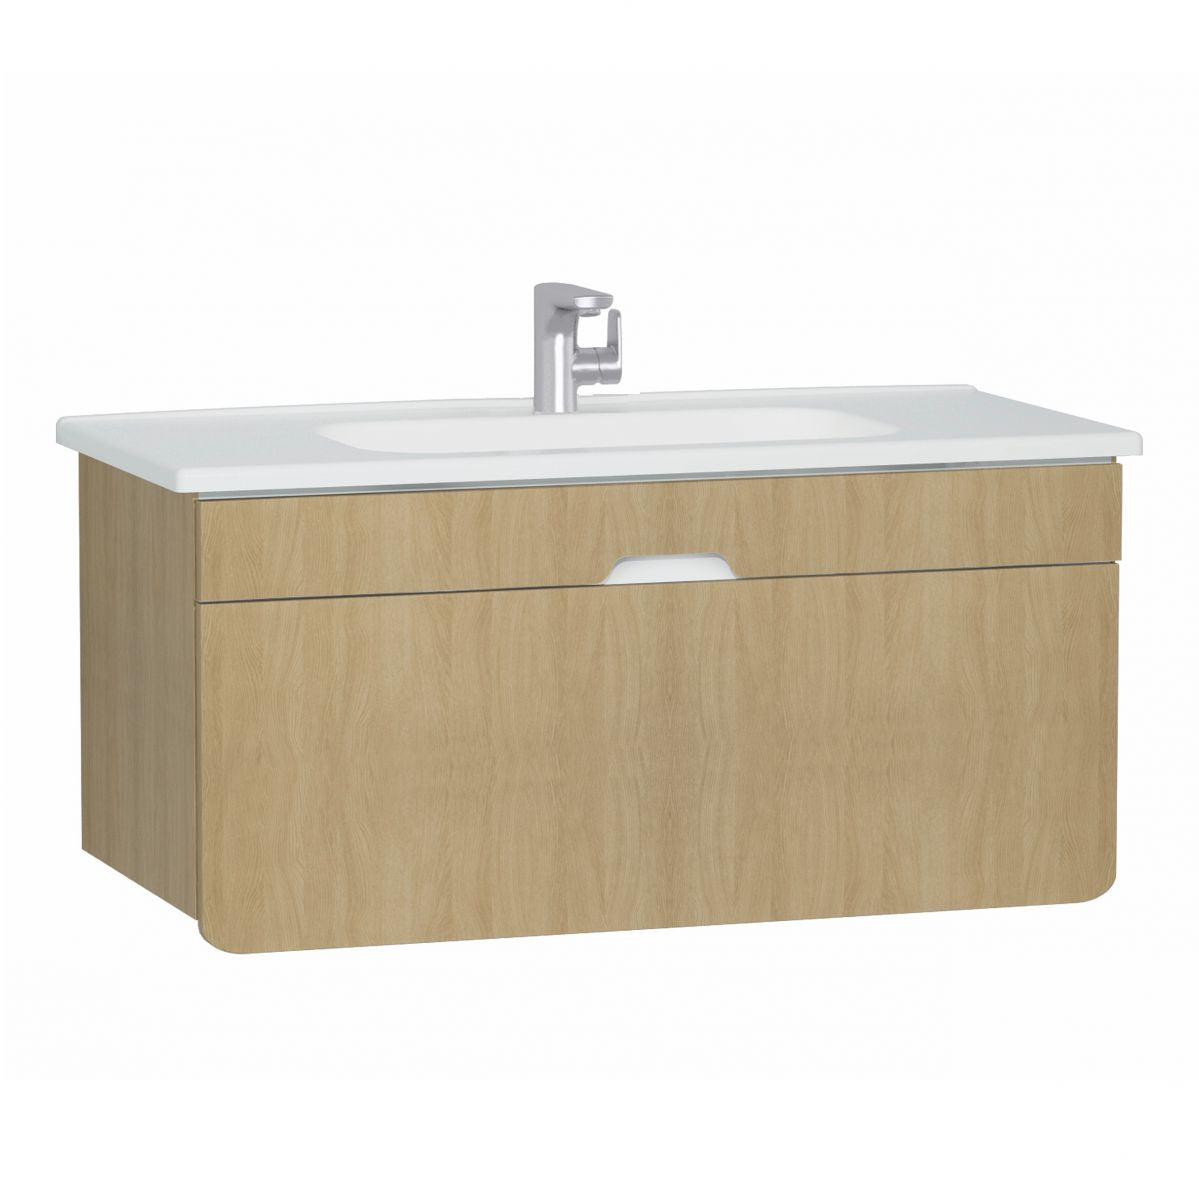 D-Light 900mm Single Drawer Wall Hung Unit & Basin - blueskybathrooms